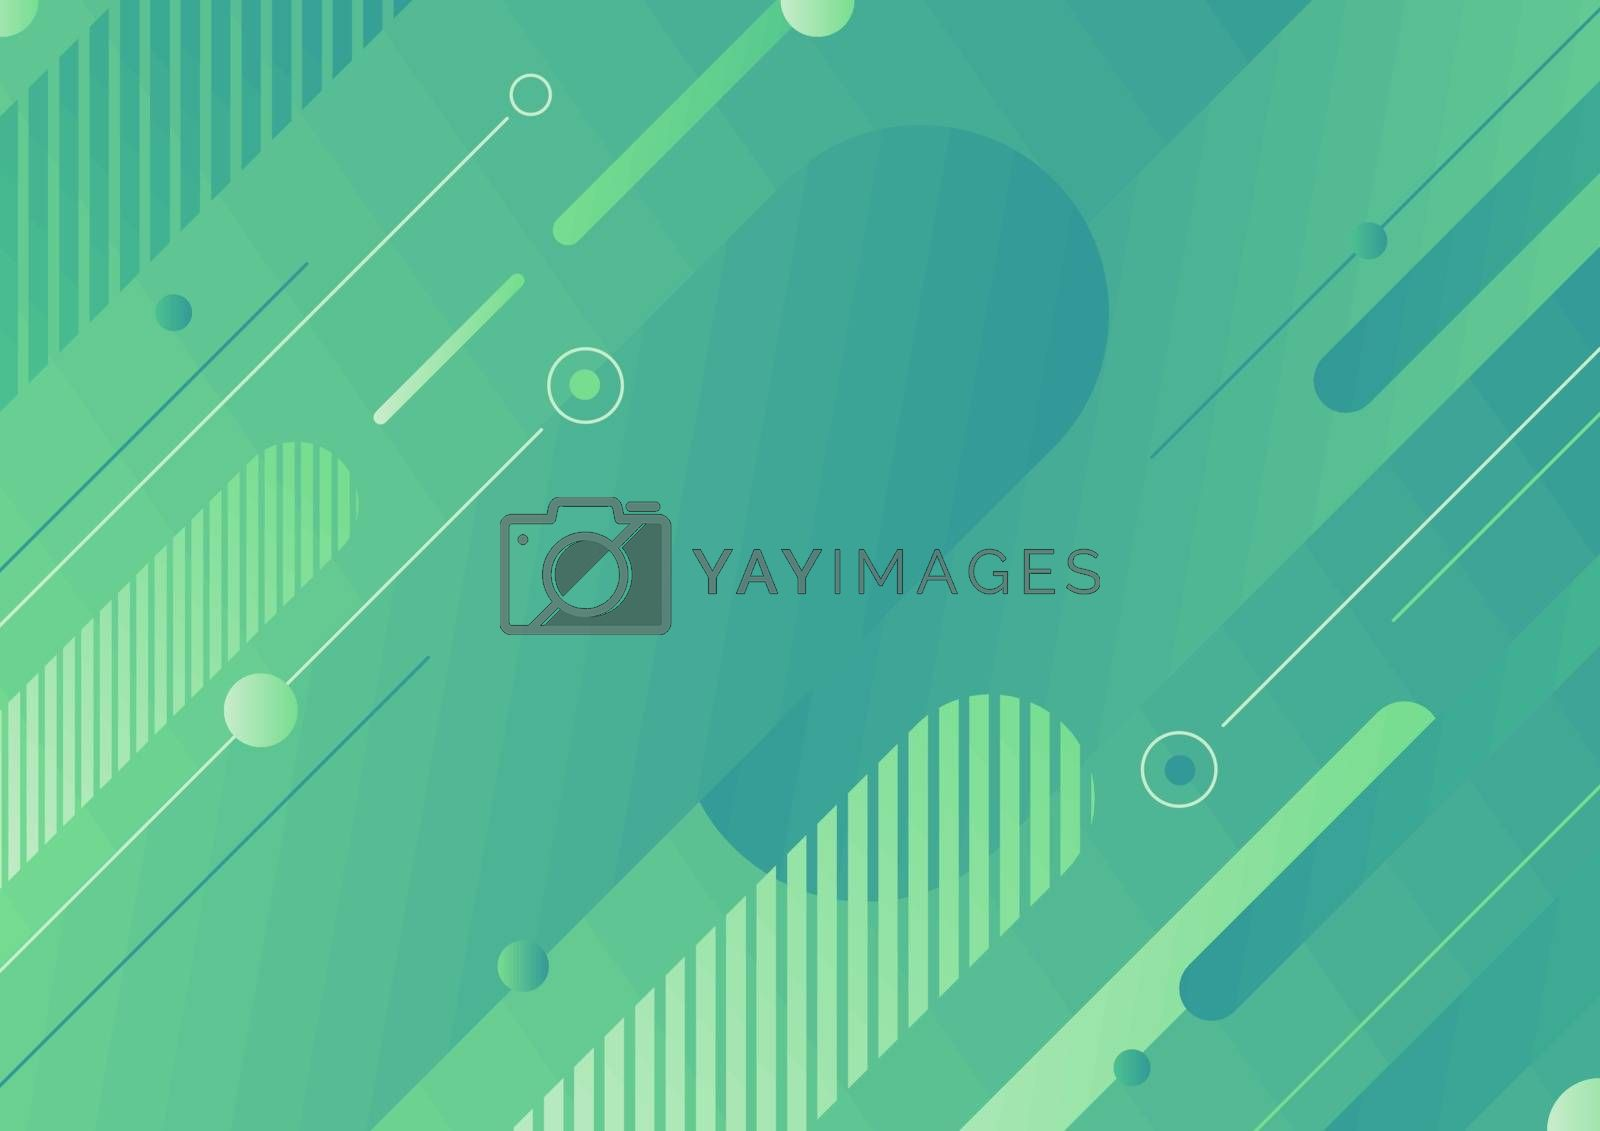 Abstract modern green color diagonal geometric rounded lines shapes background. You can use for design template for cover brochures, flyers, banners web, headers, book, poster, etc. Vector illustration